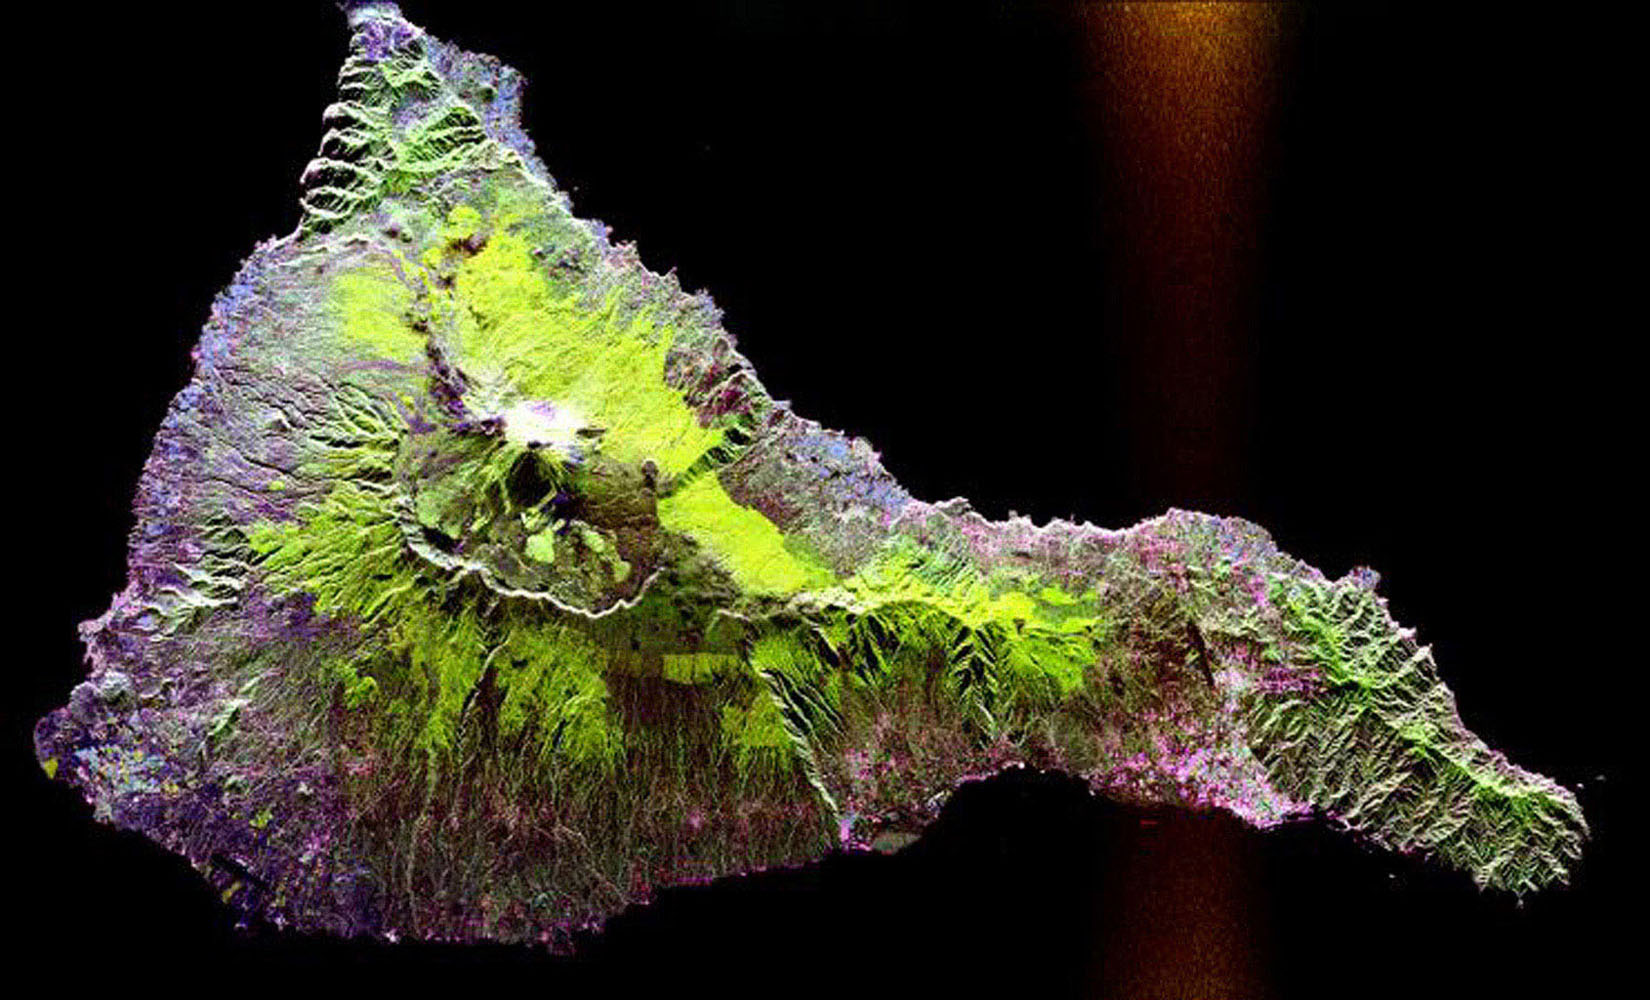 This radar image NASA's Spaceborne Imaging Radar-C/X-band Synthetic Aperture Radar shows the Teide volcano on the island of Tenerife in the Canary Islands, part of Spain, located in the eastern Atlantic Ocean off the coast of Morocco.